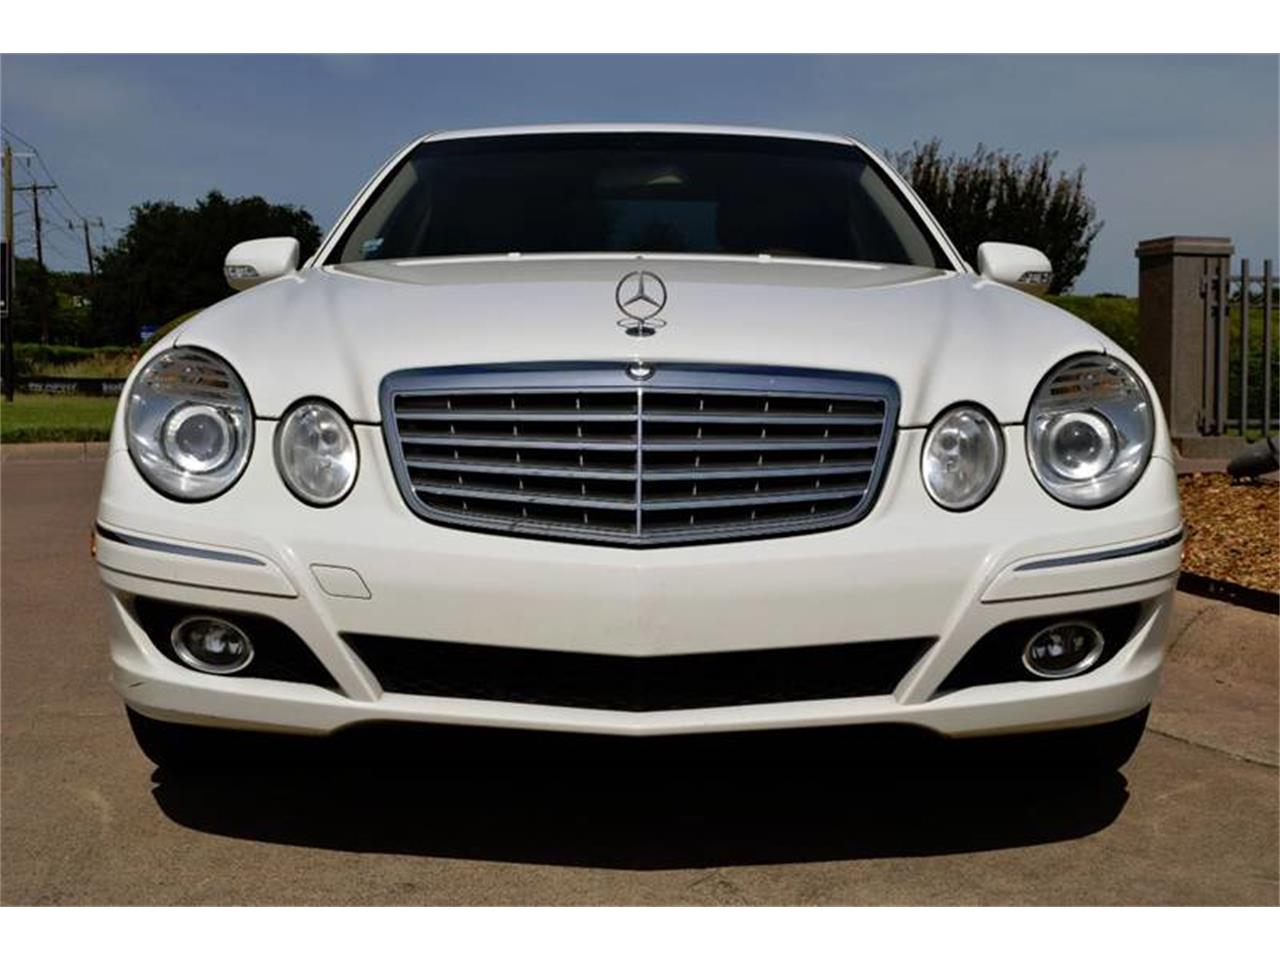 2009 Mercedes-Benz E-Class for sale in Fort Worth, TX – photo 2